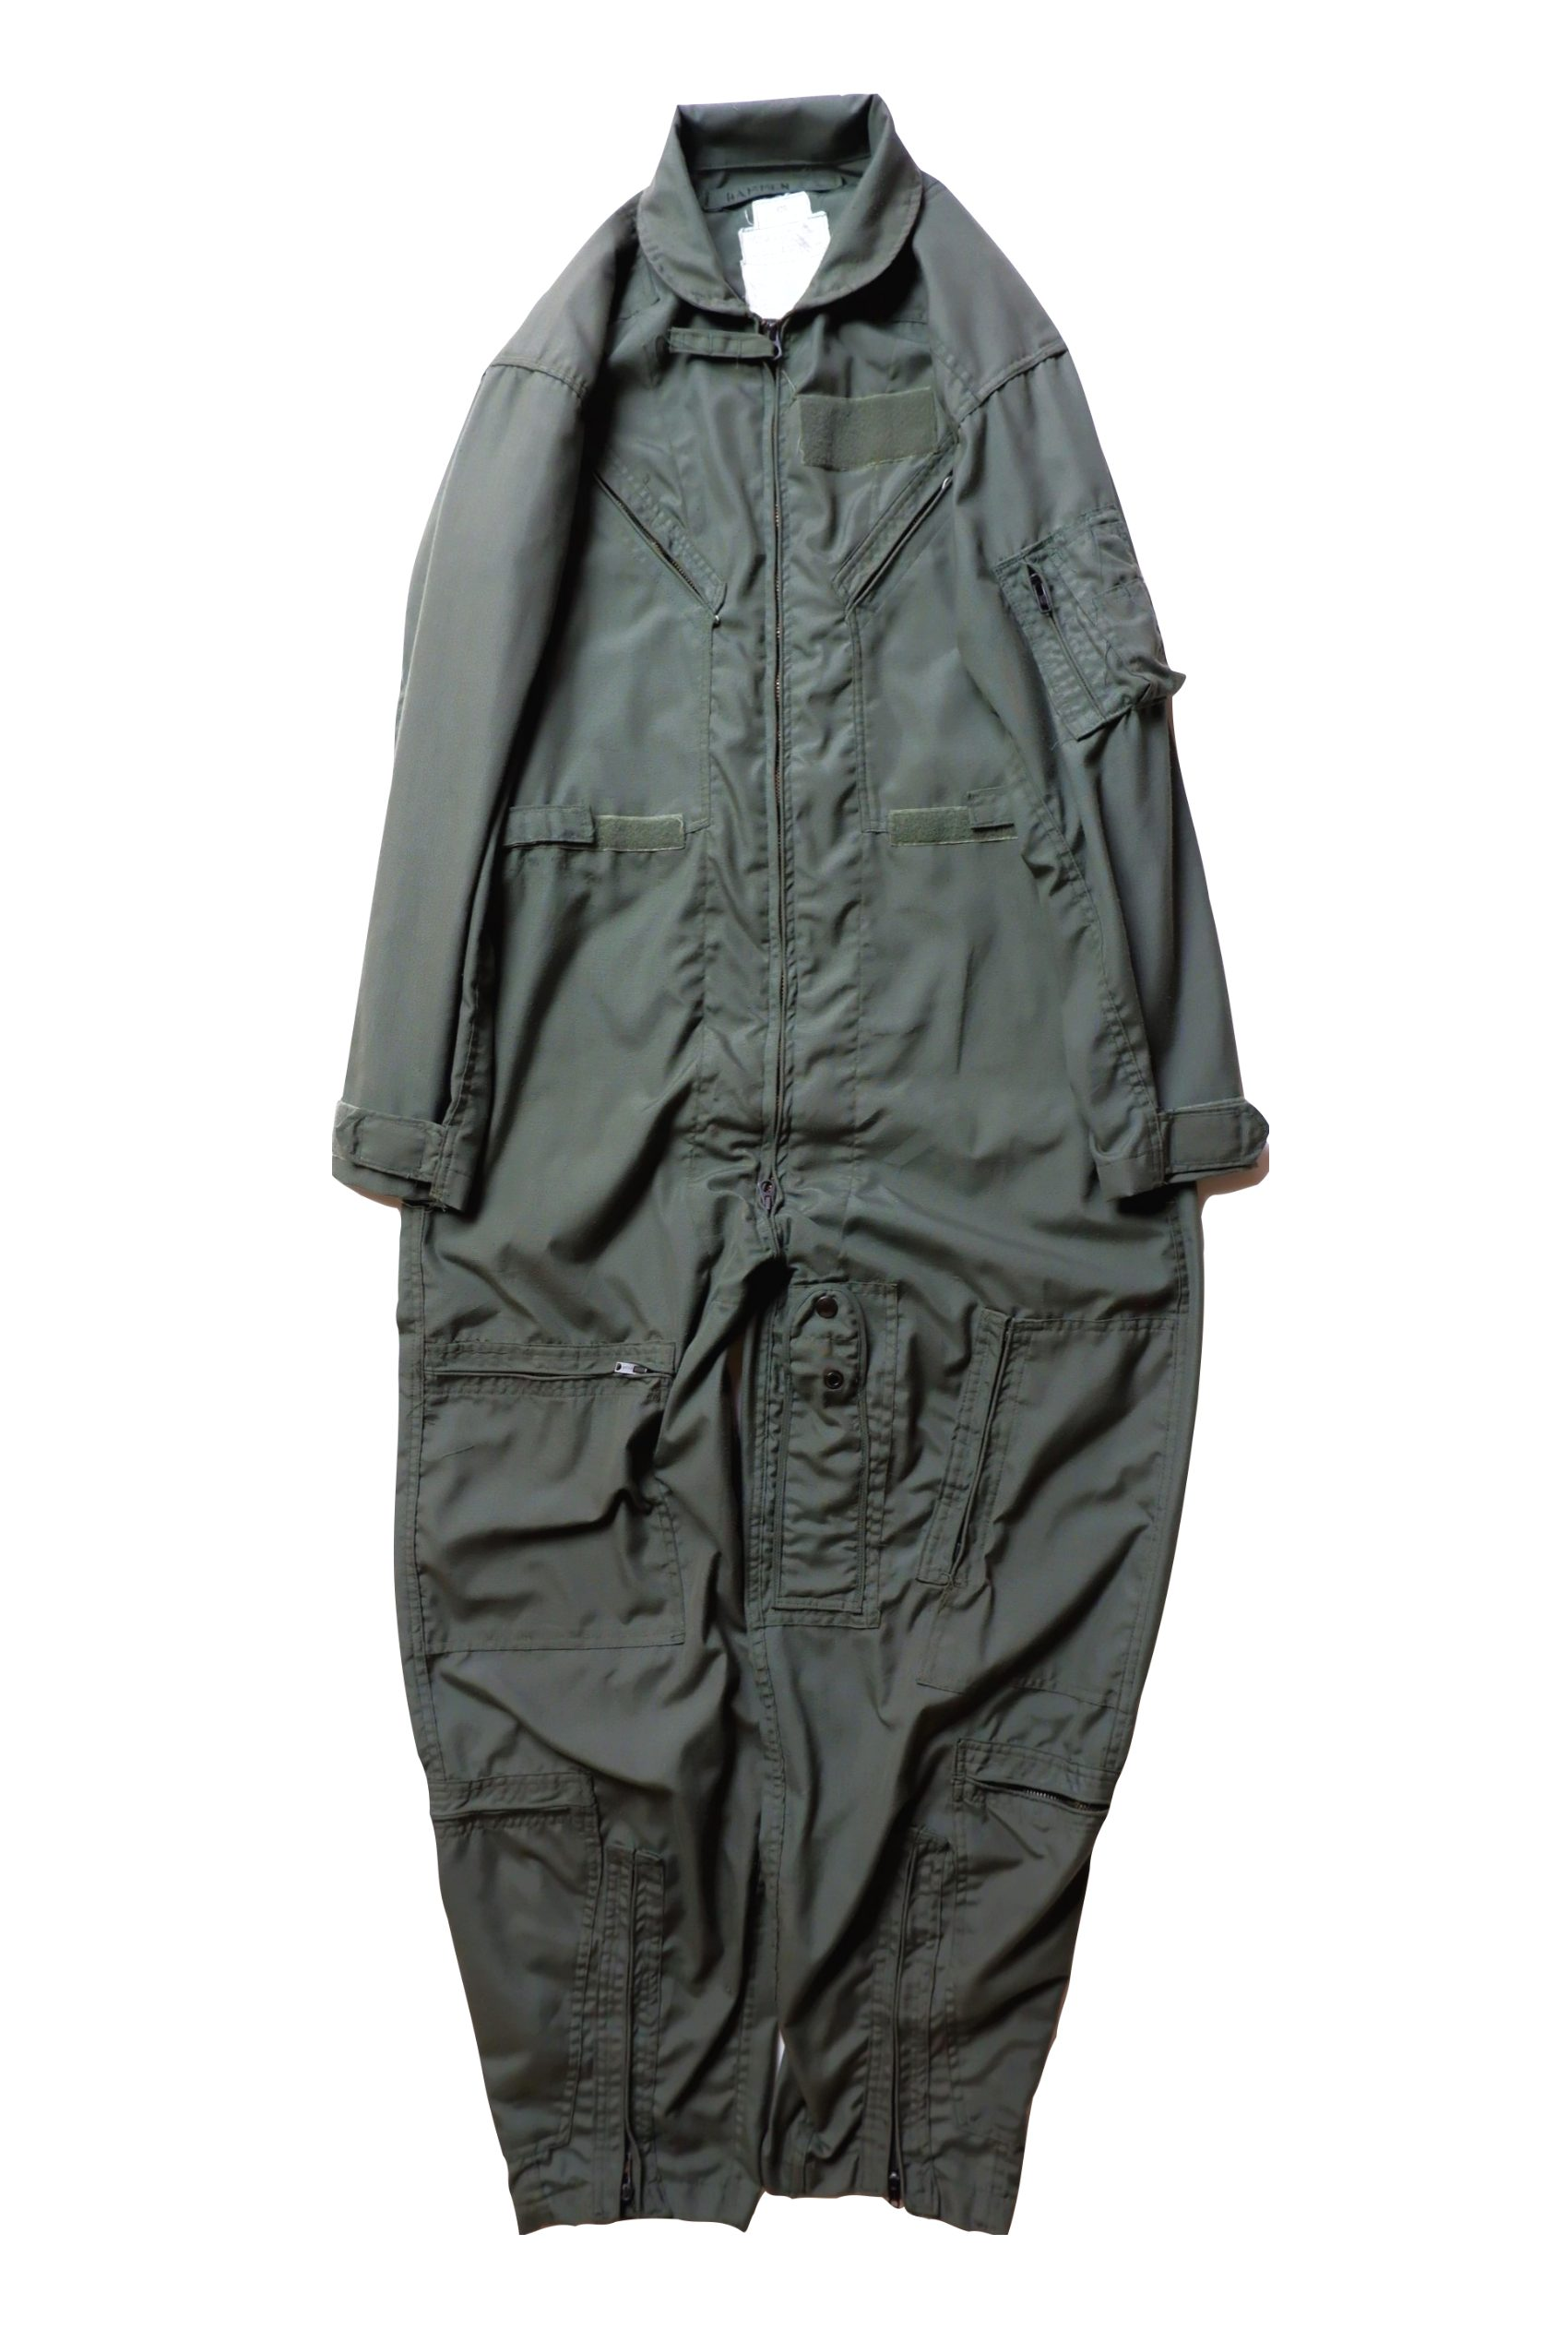 CWU-27P Flying Coveralls